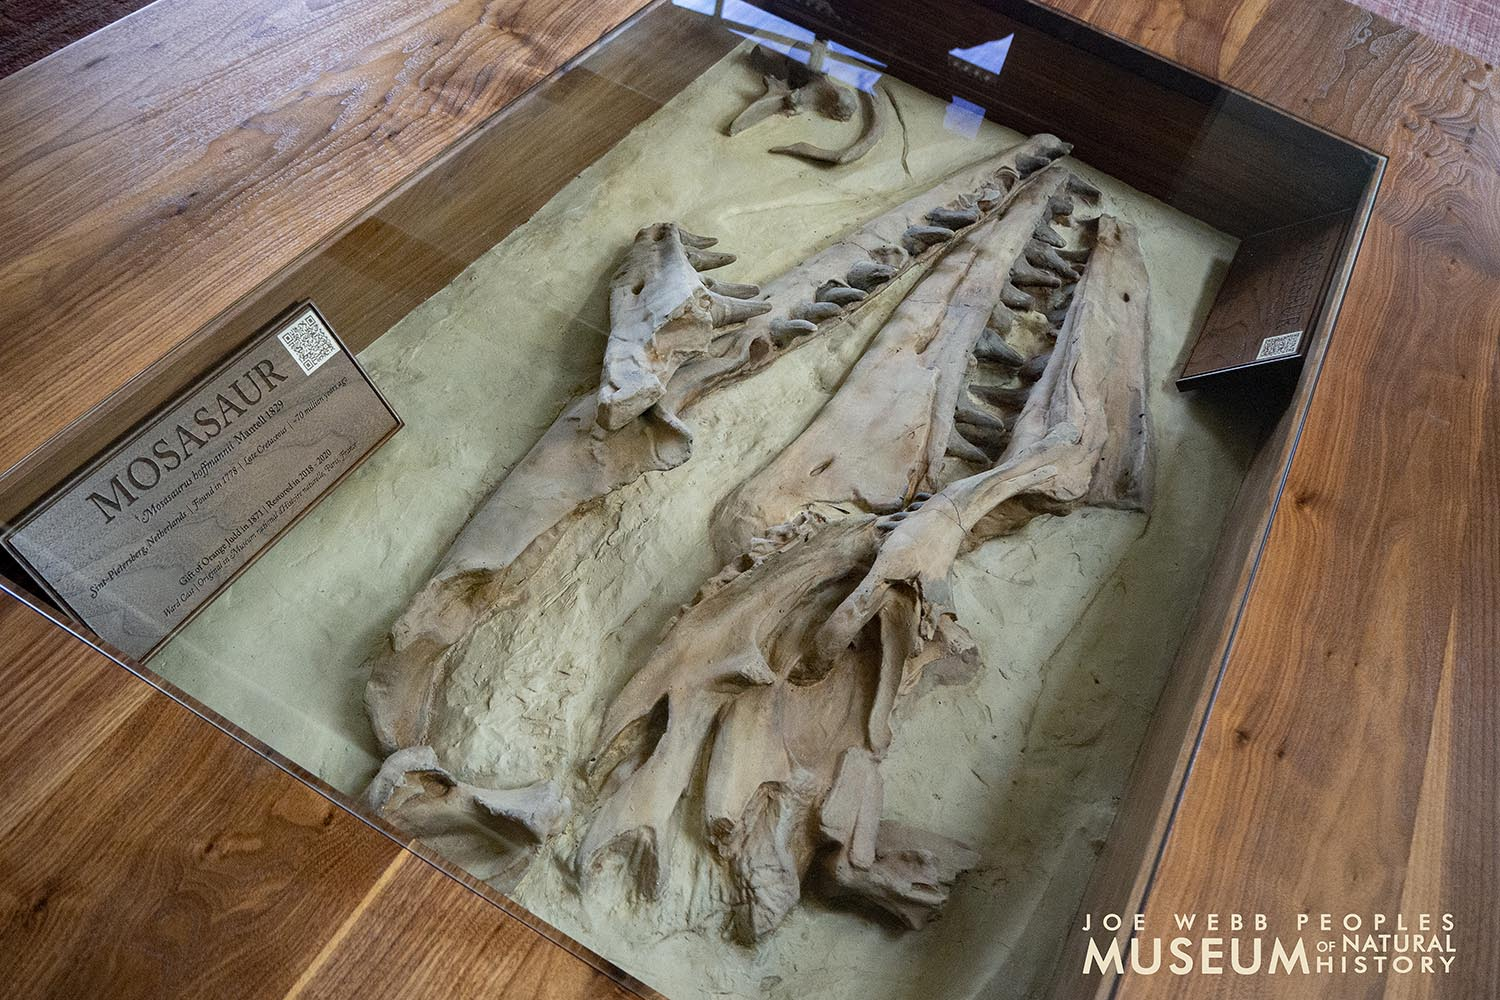 The mosasaur cast is mounted in a 37-by-57-inch tempered glass case.